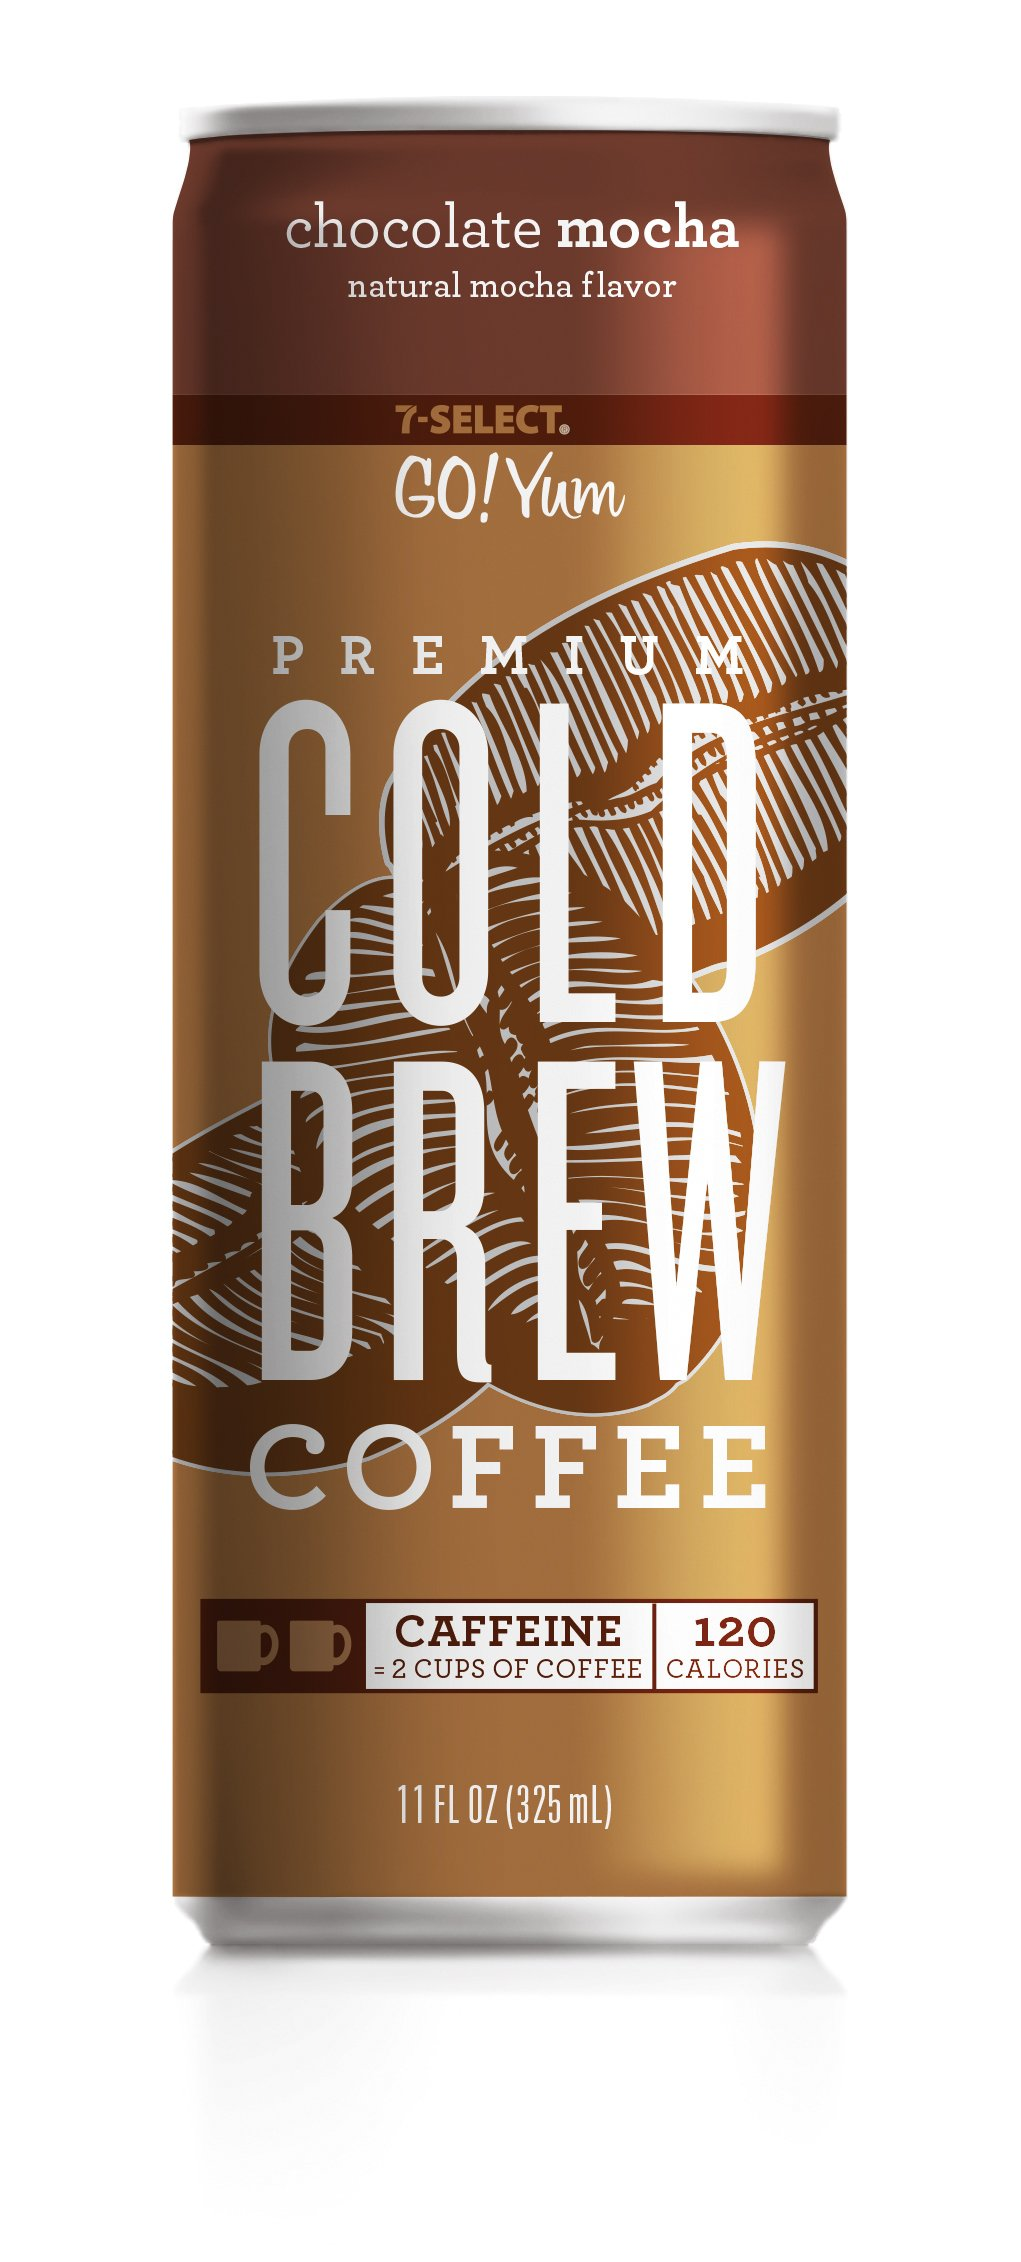 7-Select Premium Cold Brew Coffee-Chocolate Mocha, 11 Ounce Cans (12 Pack) by 7-Eleven